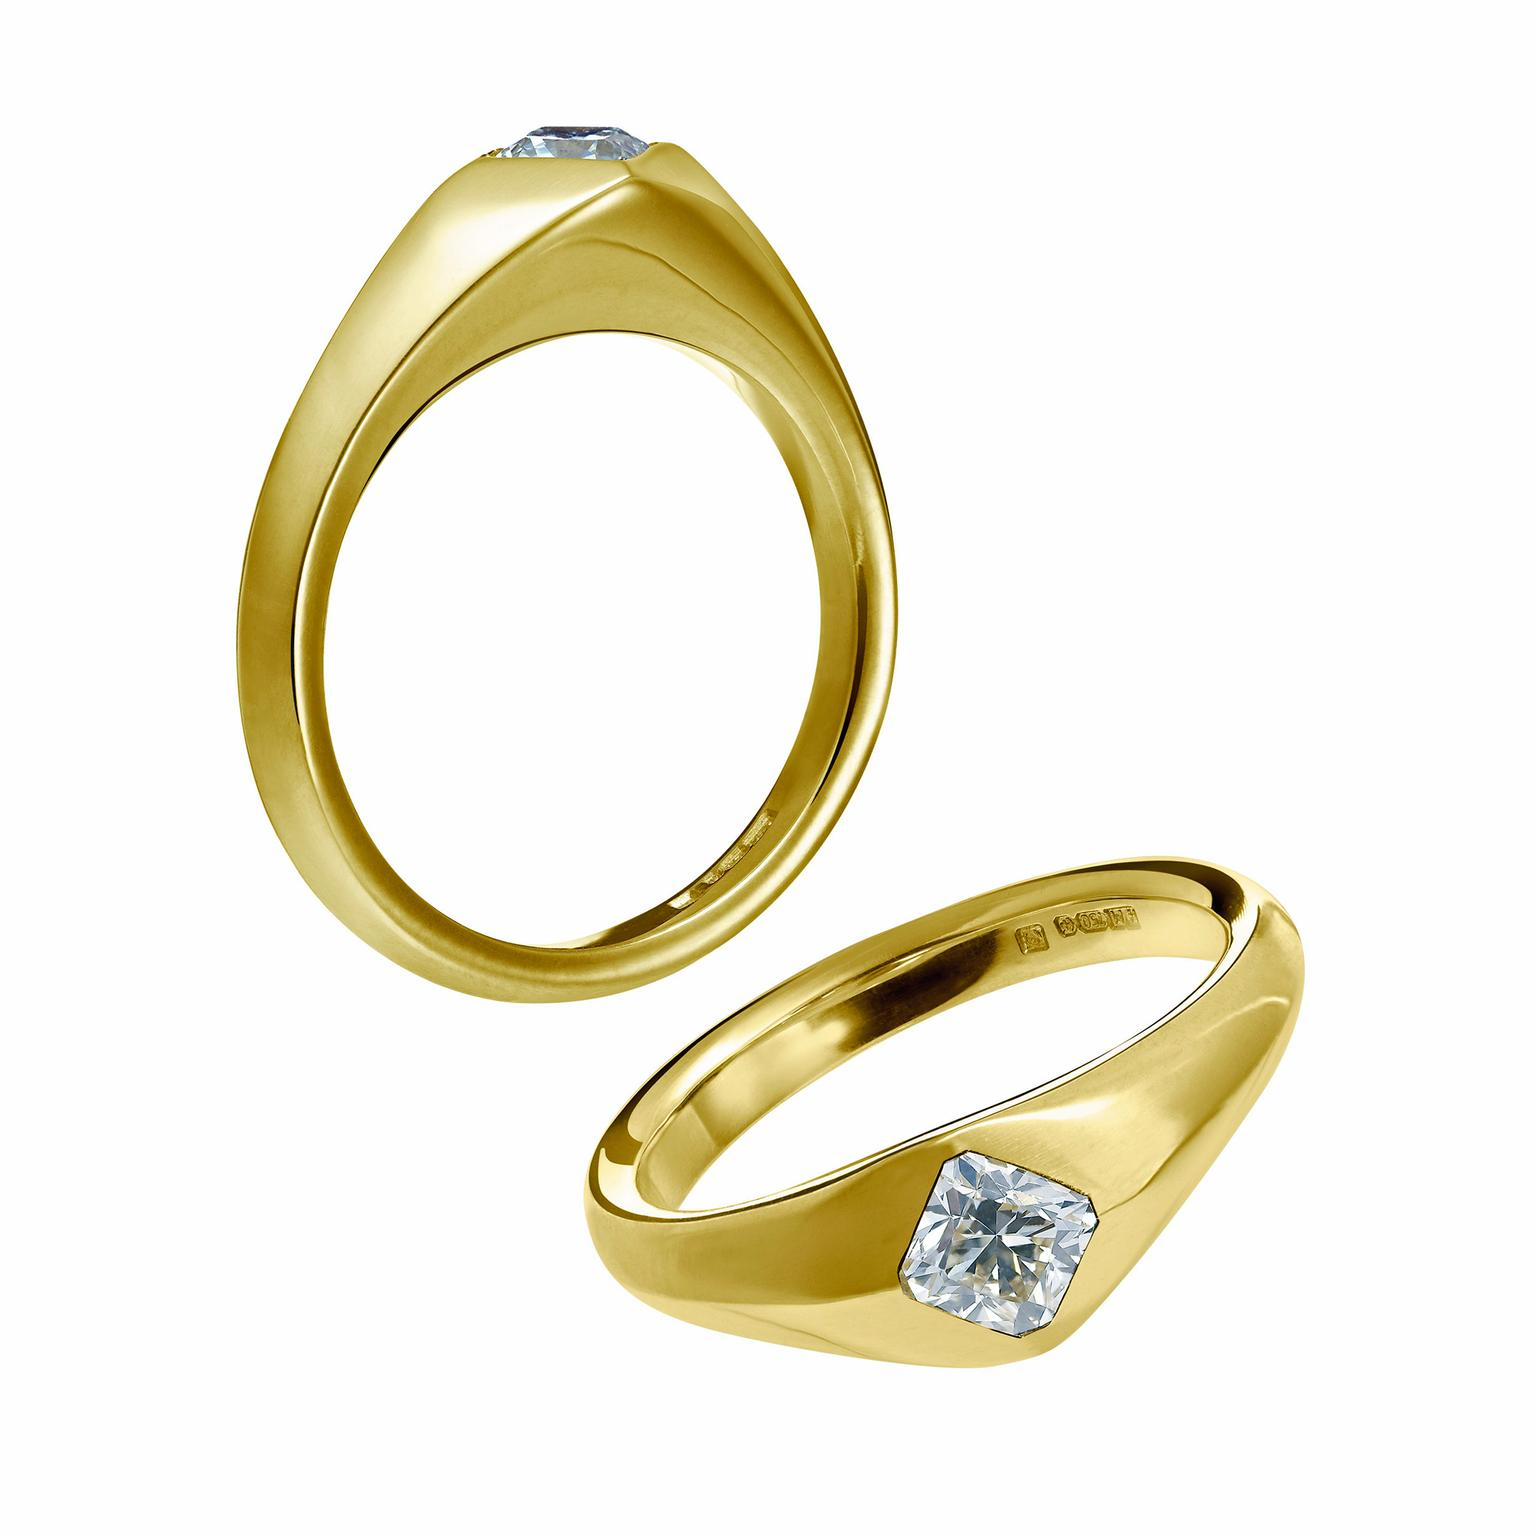 Arctic Circle Fairtrade yellow gold and diamond engagement rings